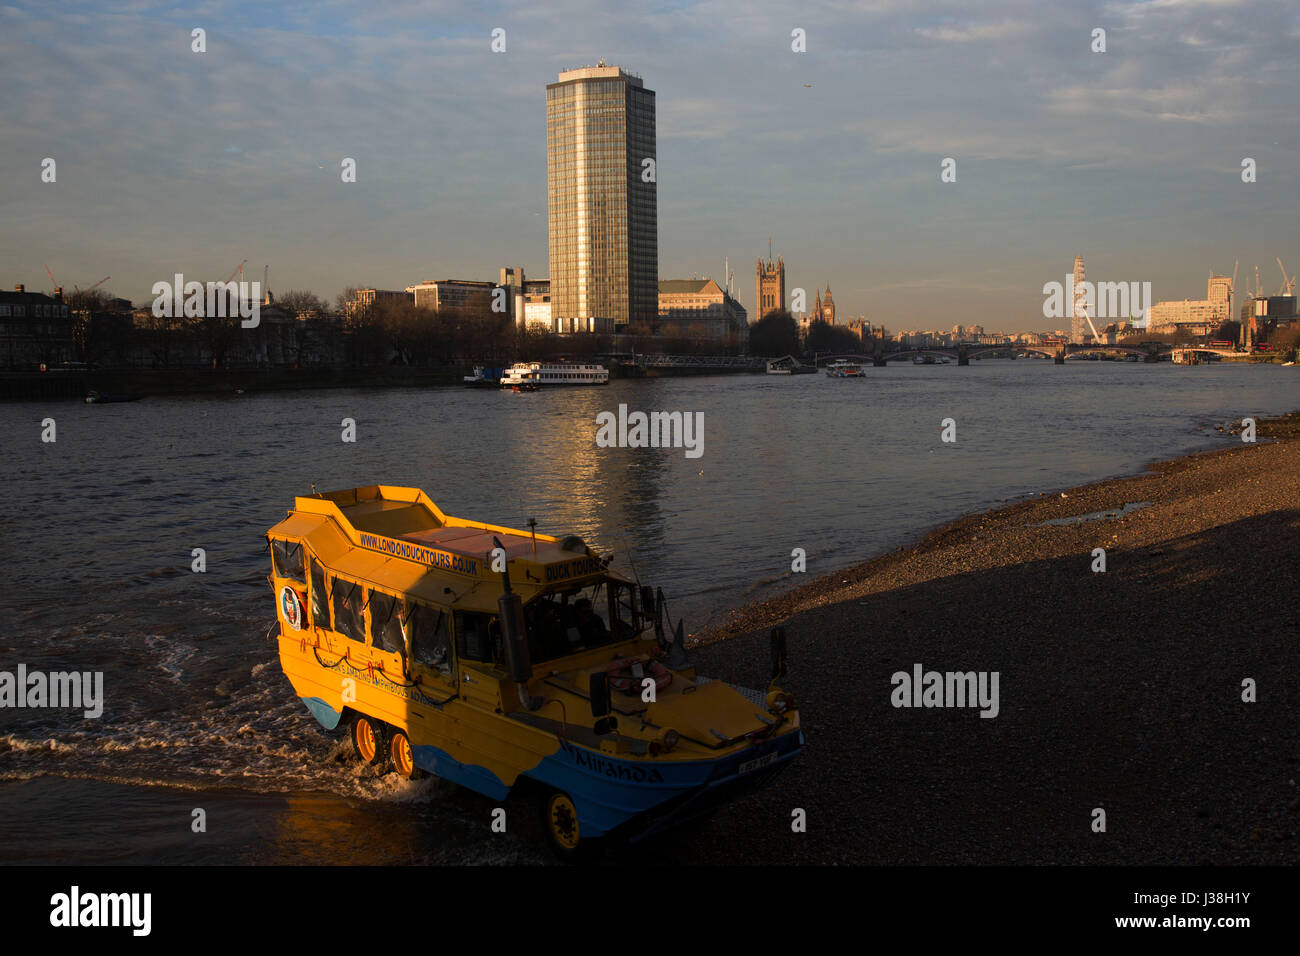 Duck Tours London amphibious vehicle driving out of the River Thames at Vauxhall in London, United Kingdom. This - Stock Image